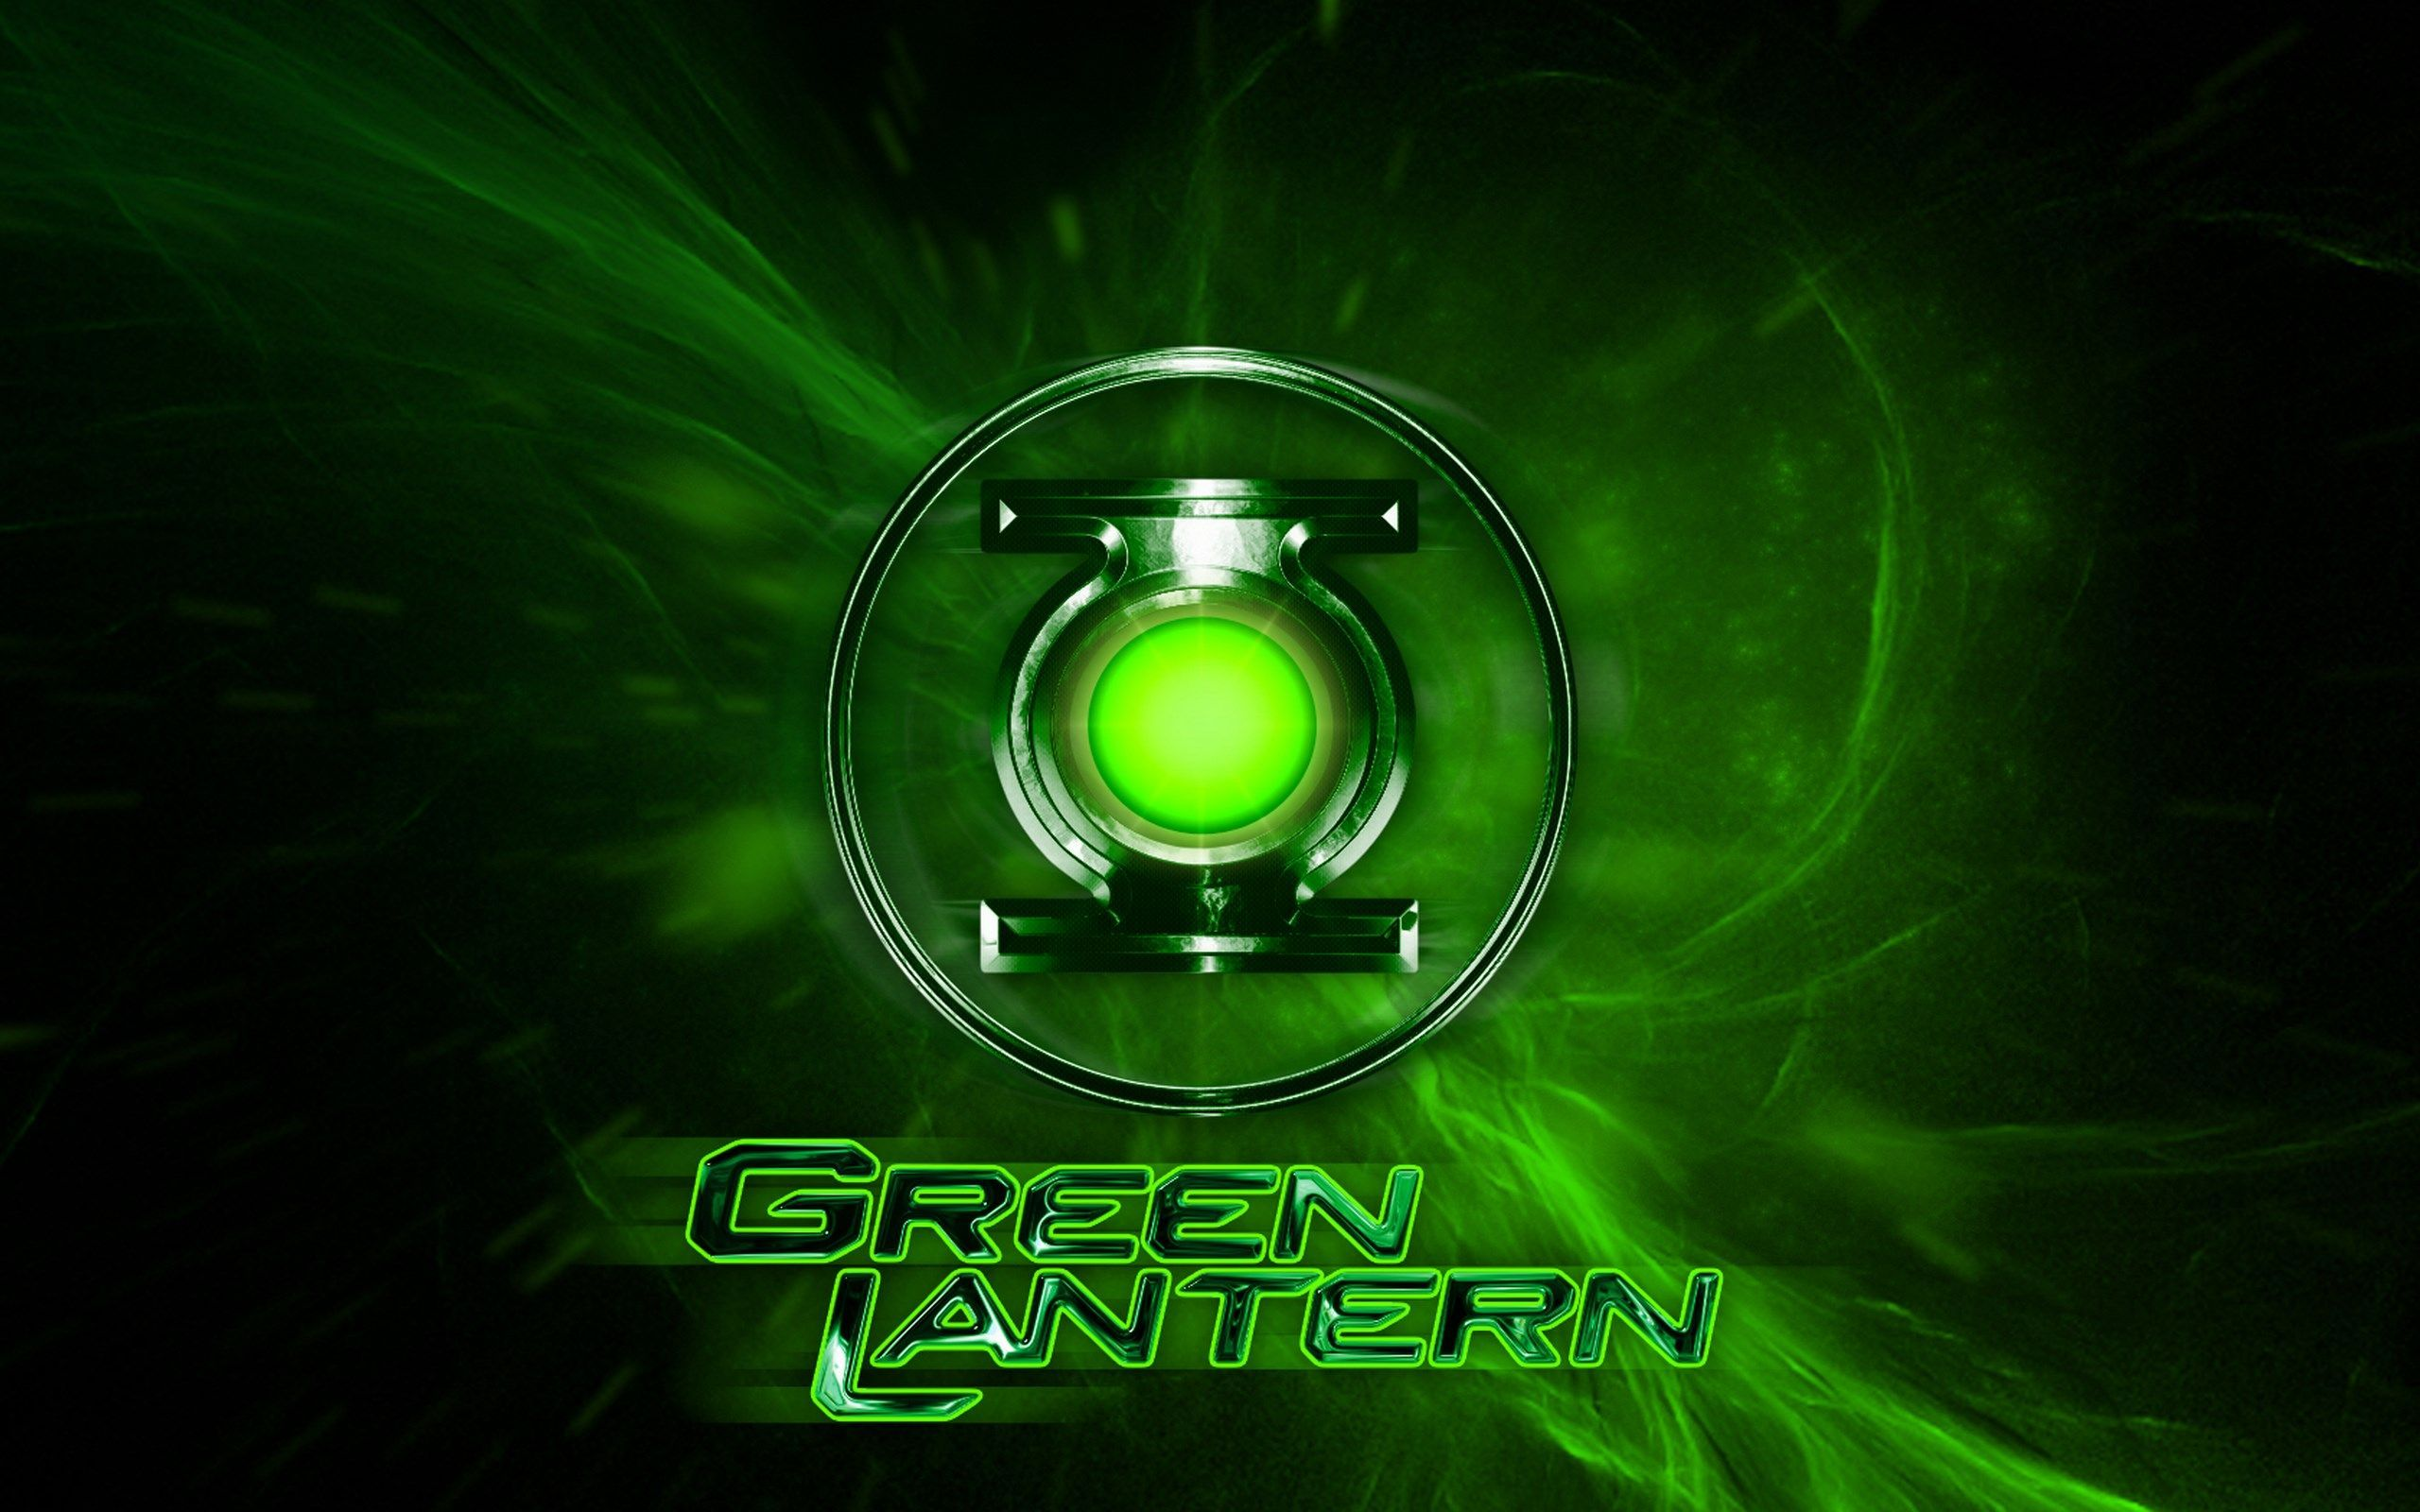 Best 43+ Green Lantern No Backgrounds on HipWallpapers